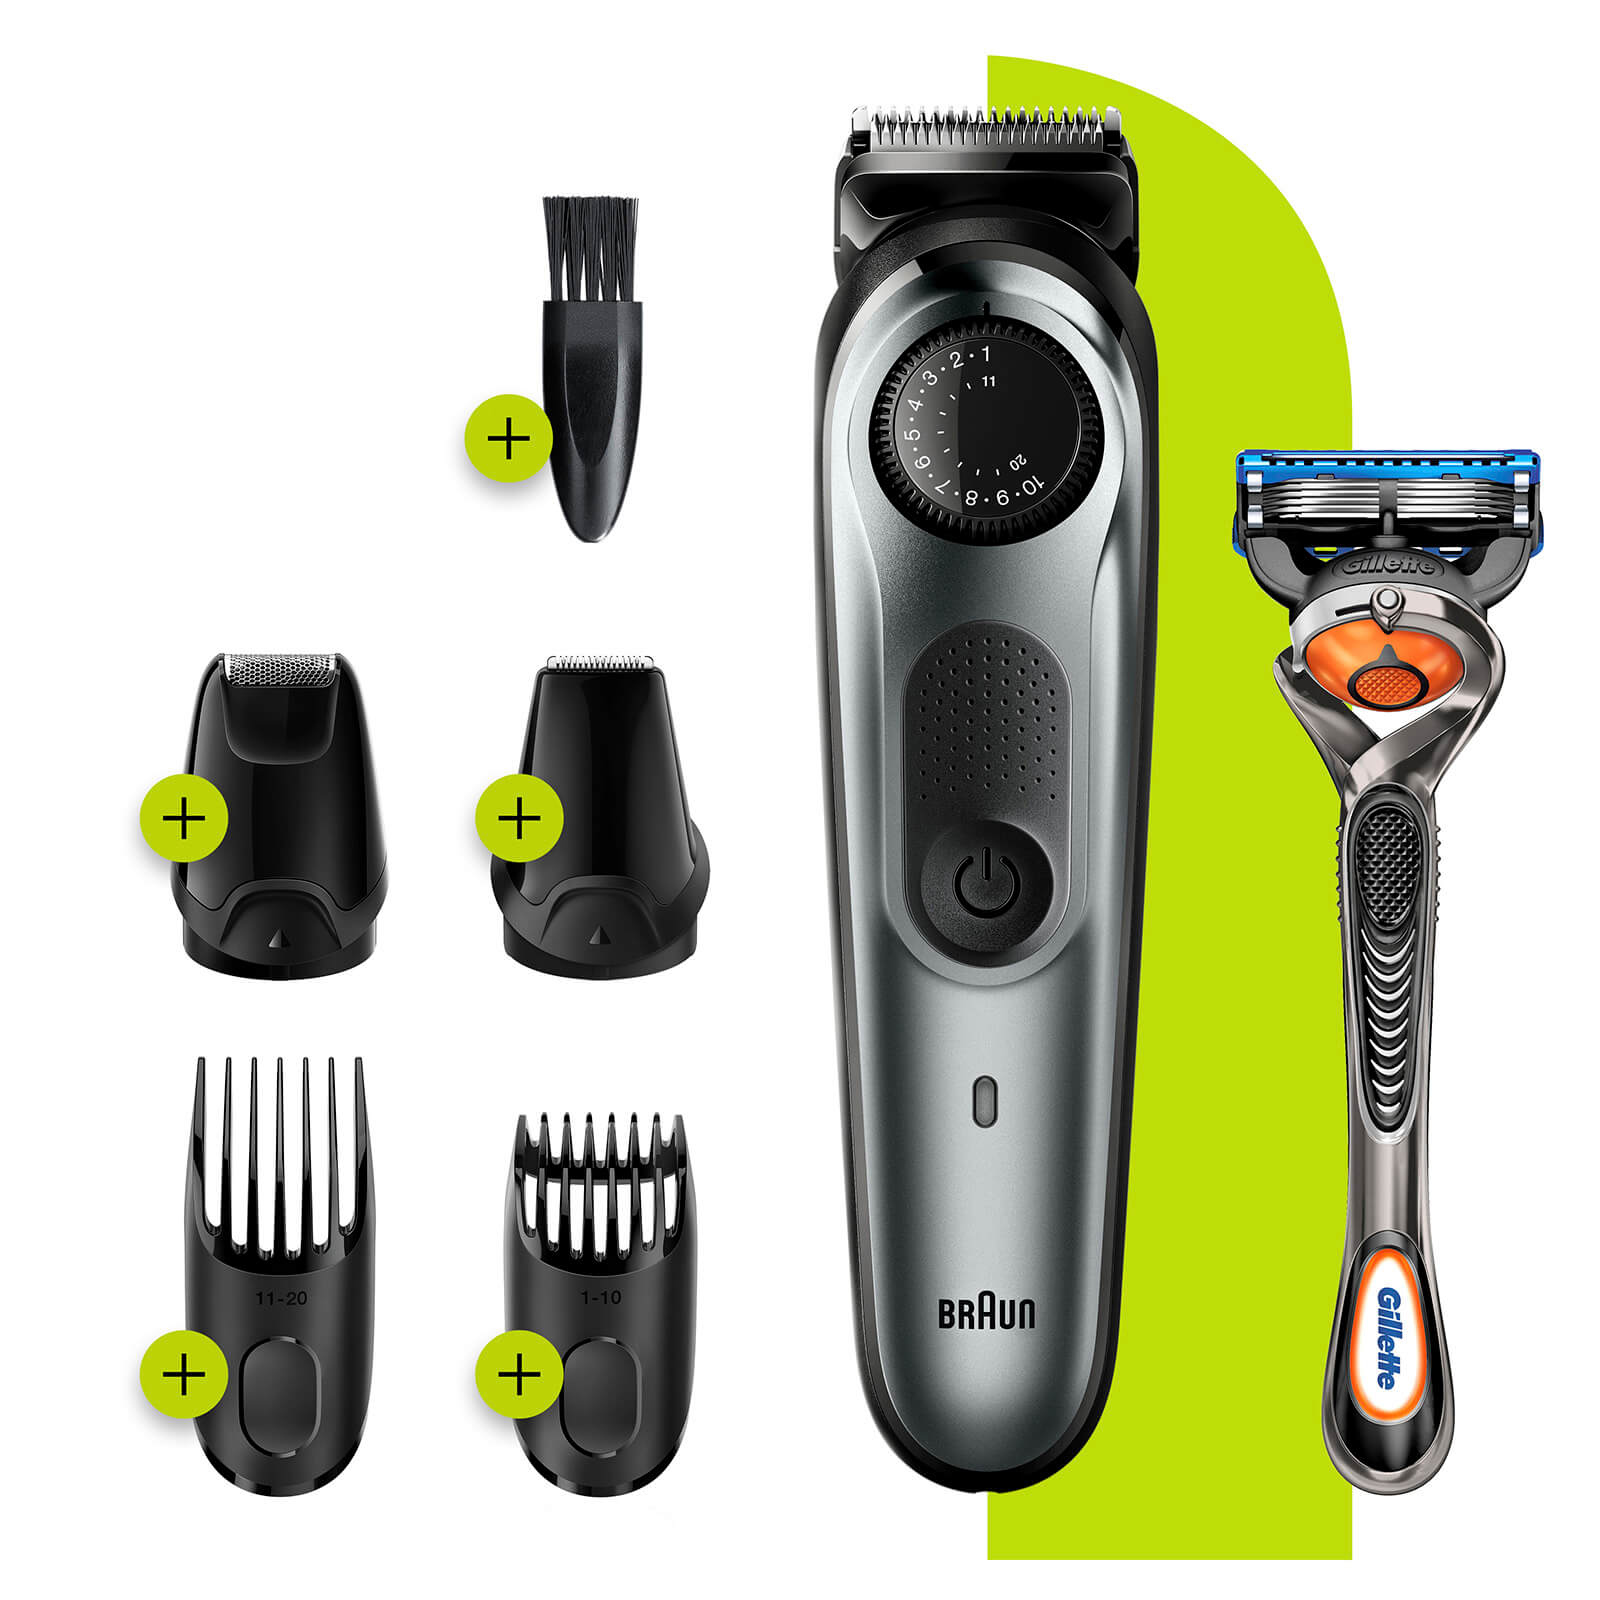 Beard Trimmer with 4 attachments and Gillette Razor - Charging Plug only